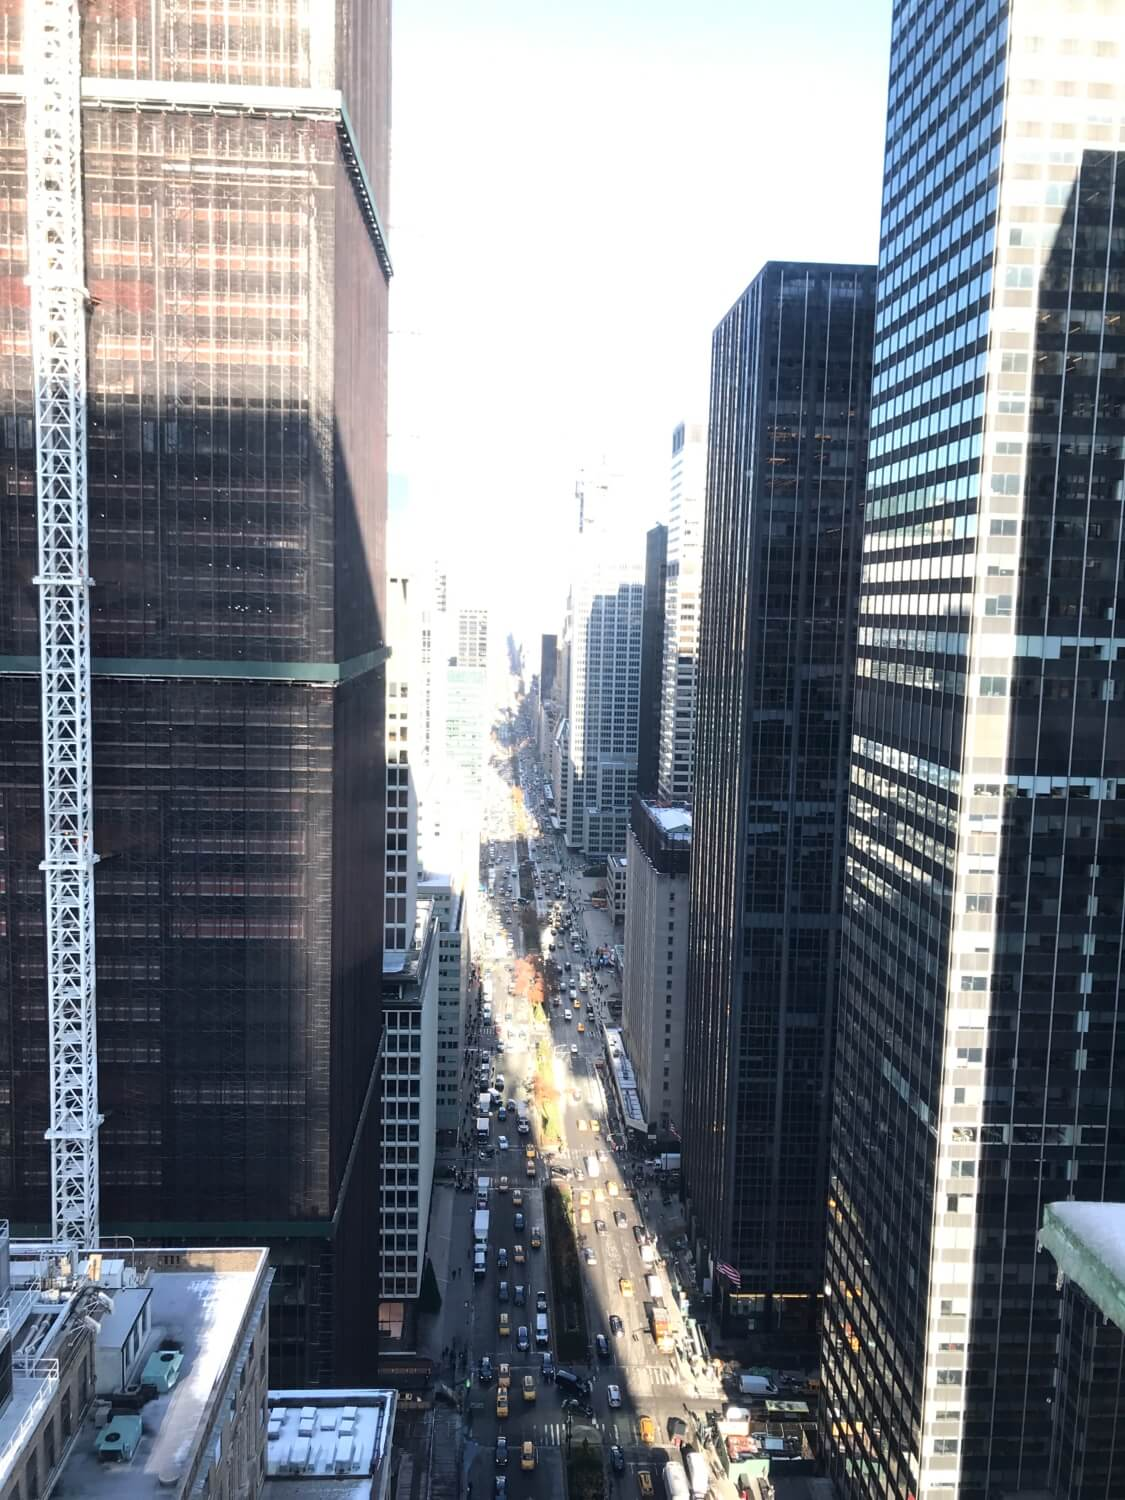 The view from New York office